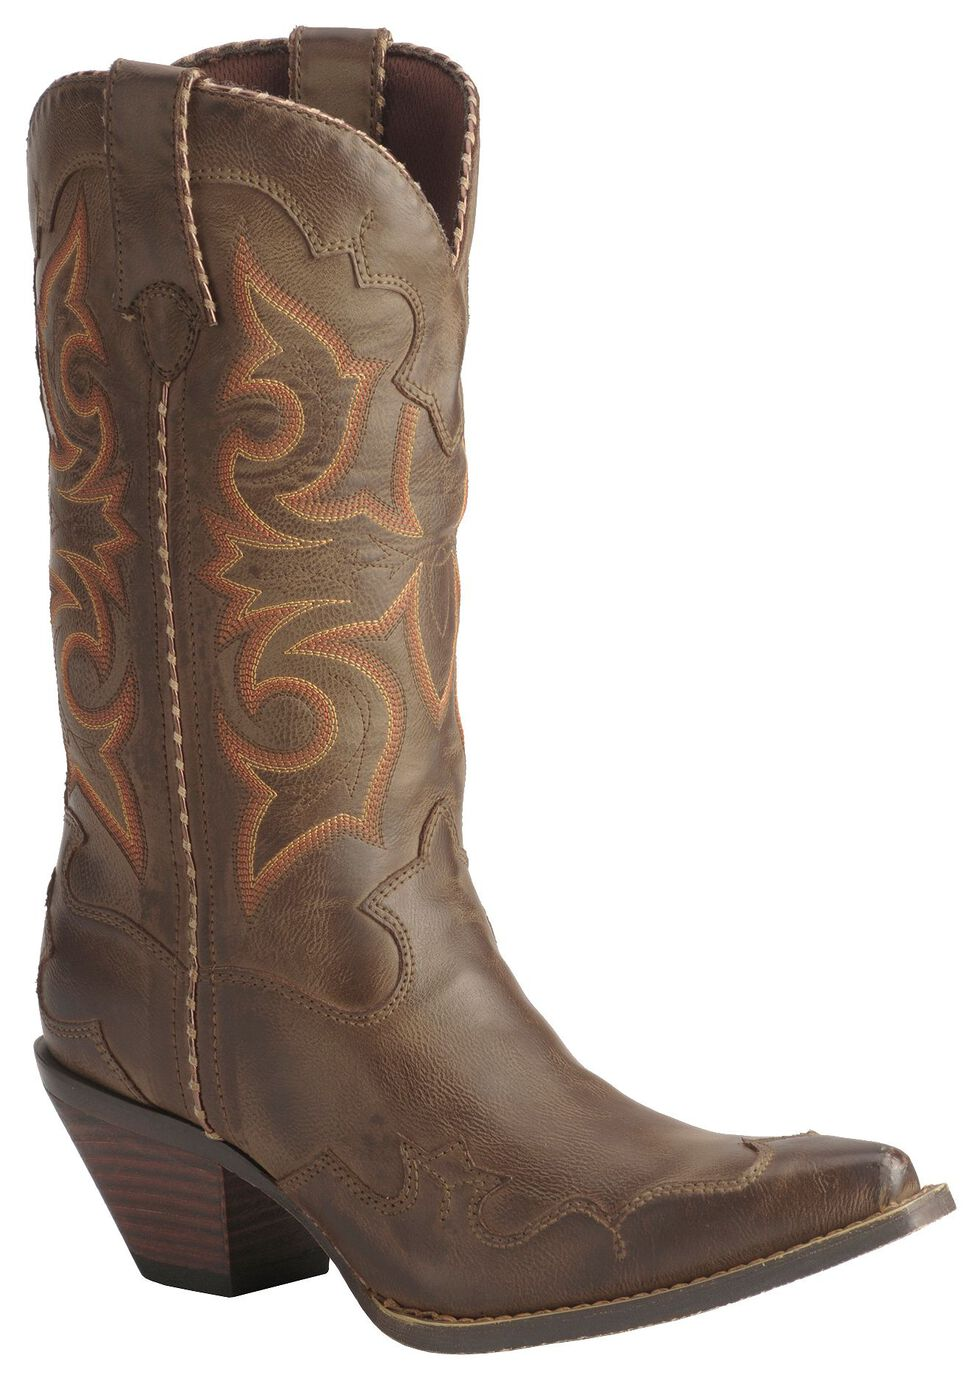 Durango Rock N' Scroll Cowgirl Boots, Saddle Tan, hi-res